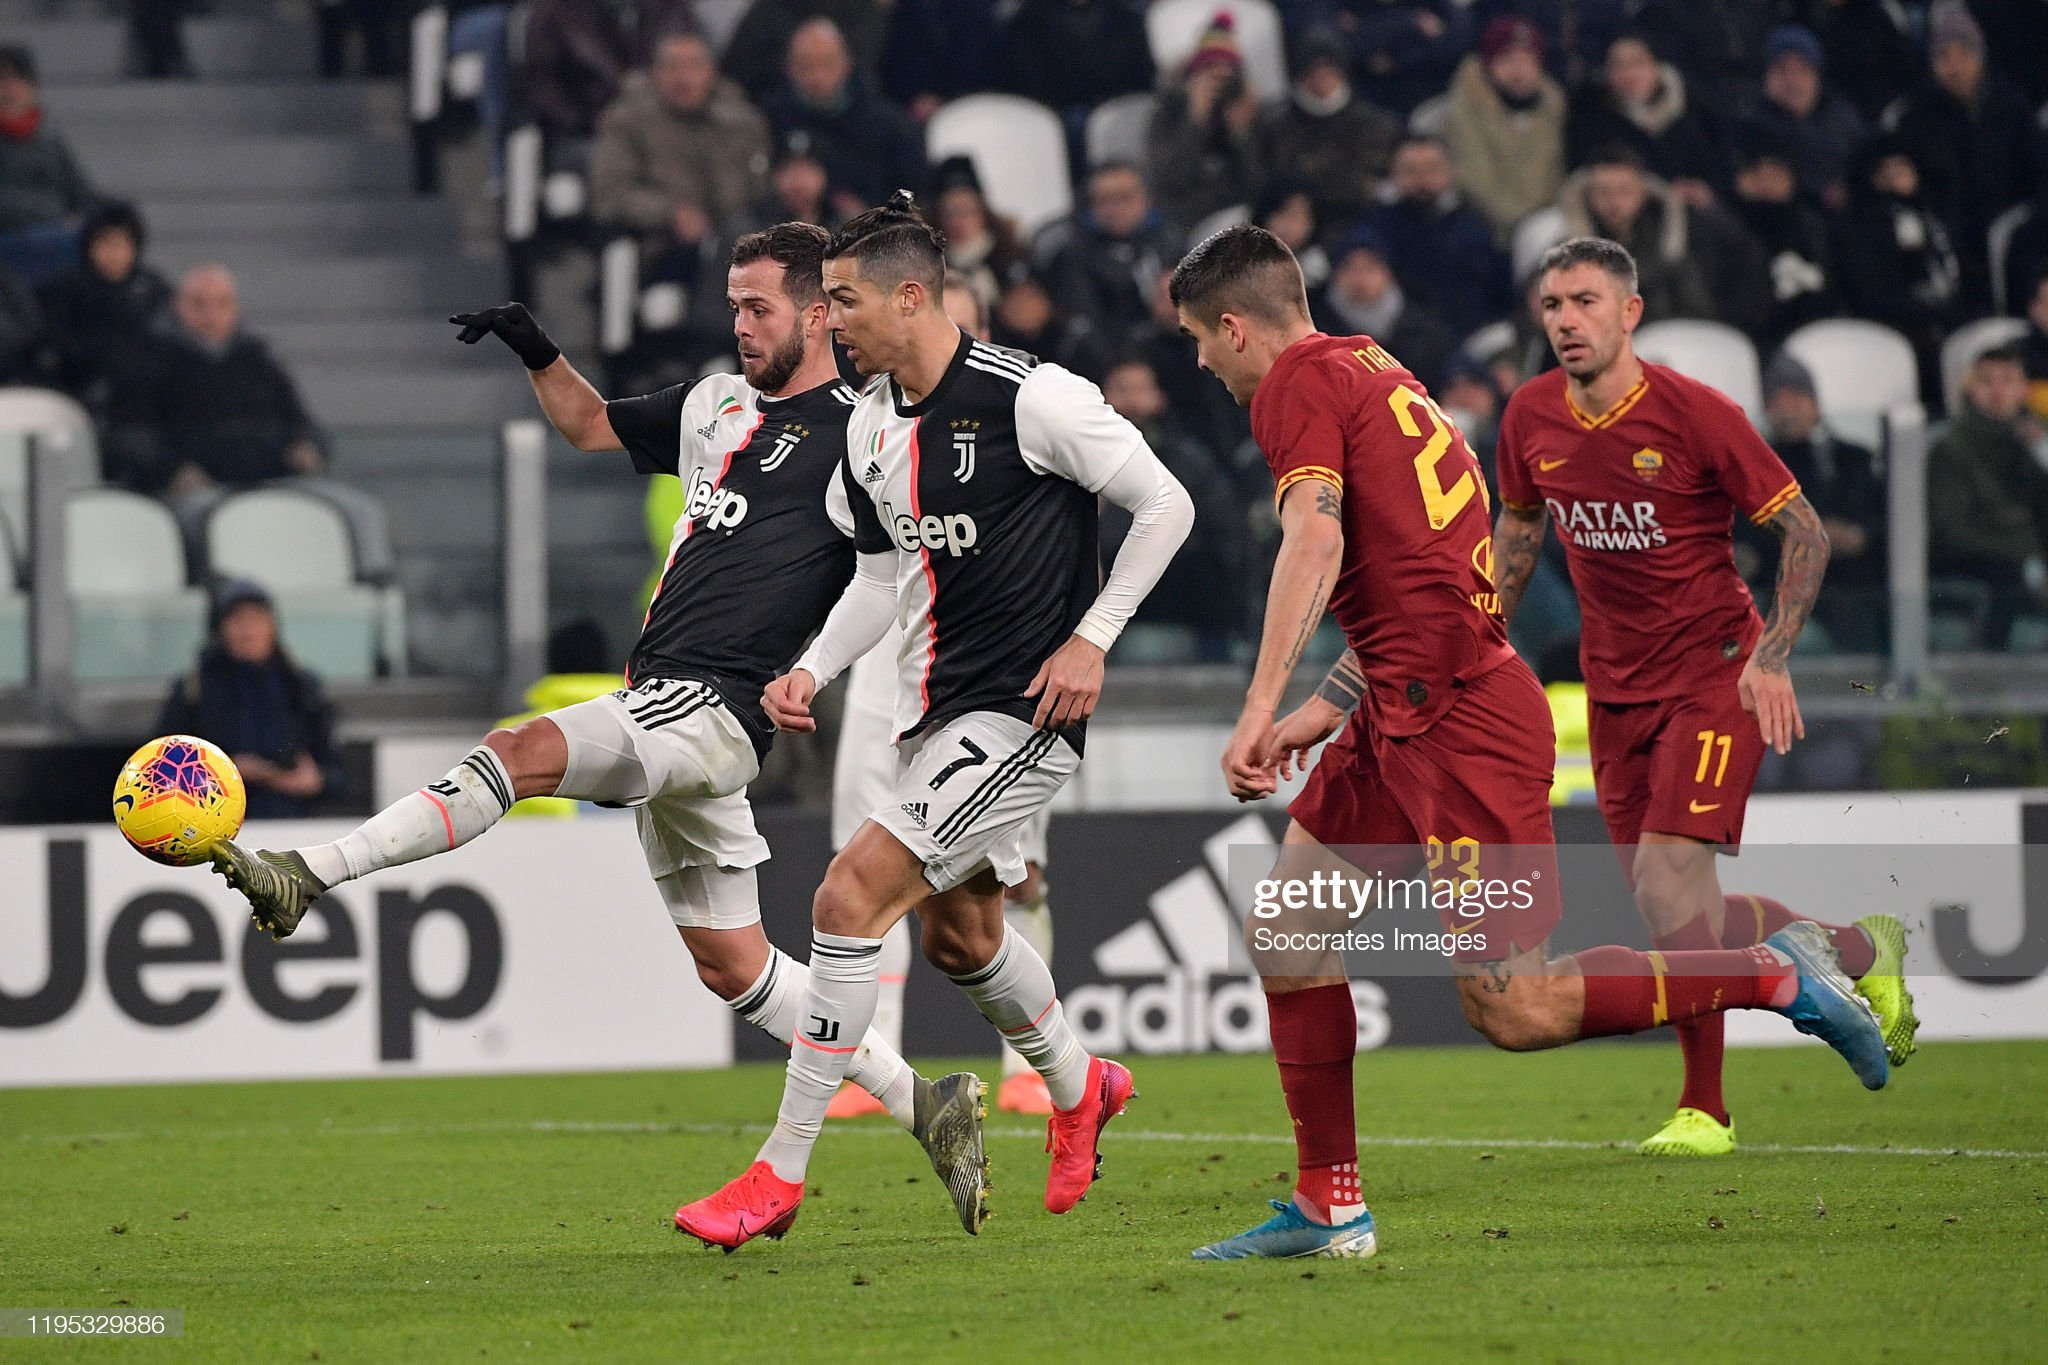 Juventus vs Roma Preview, prediction and odds